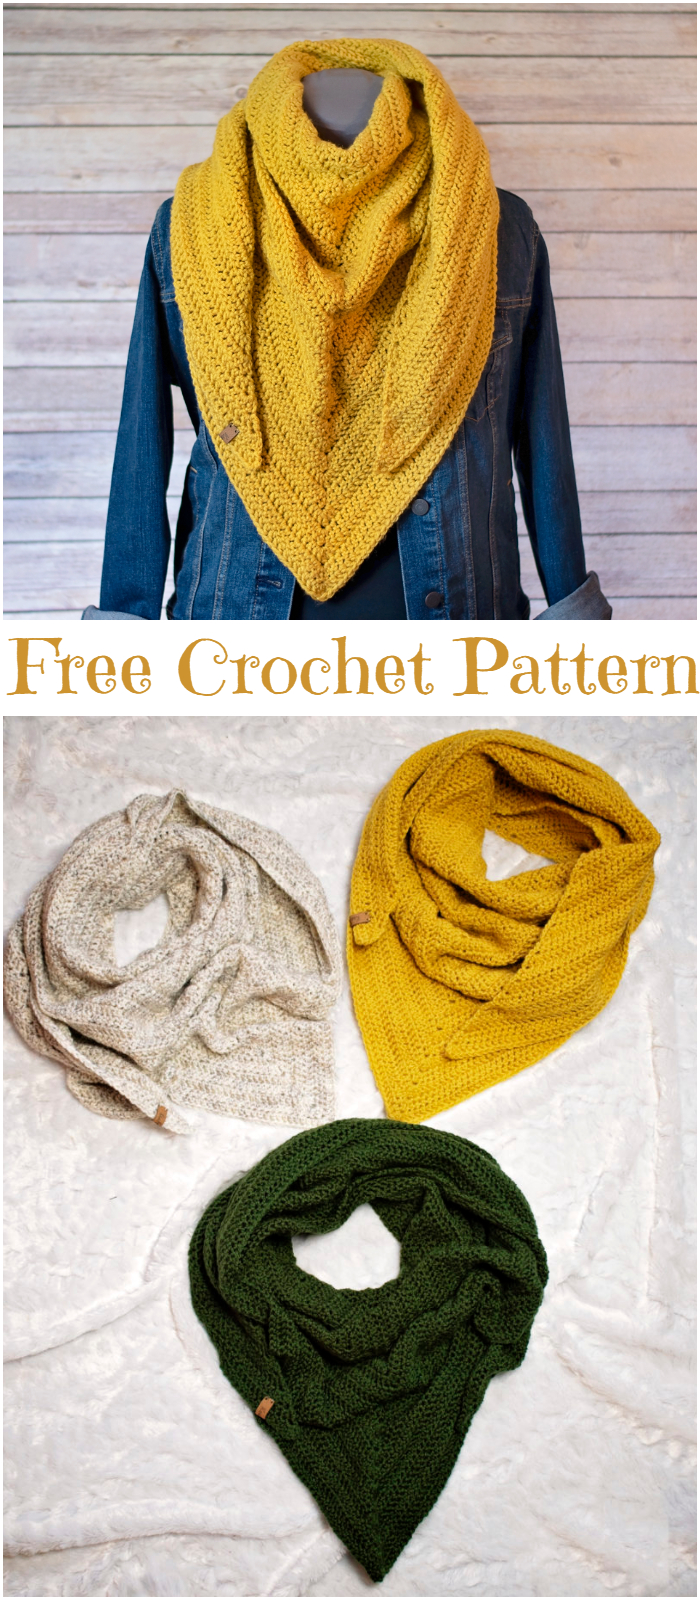 Quick and Simple Crochet Triangle Scarf Pattern